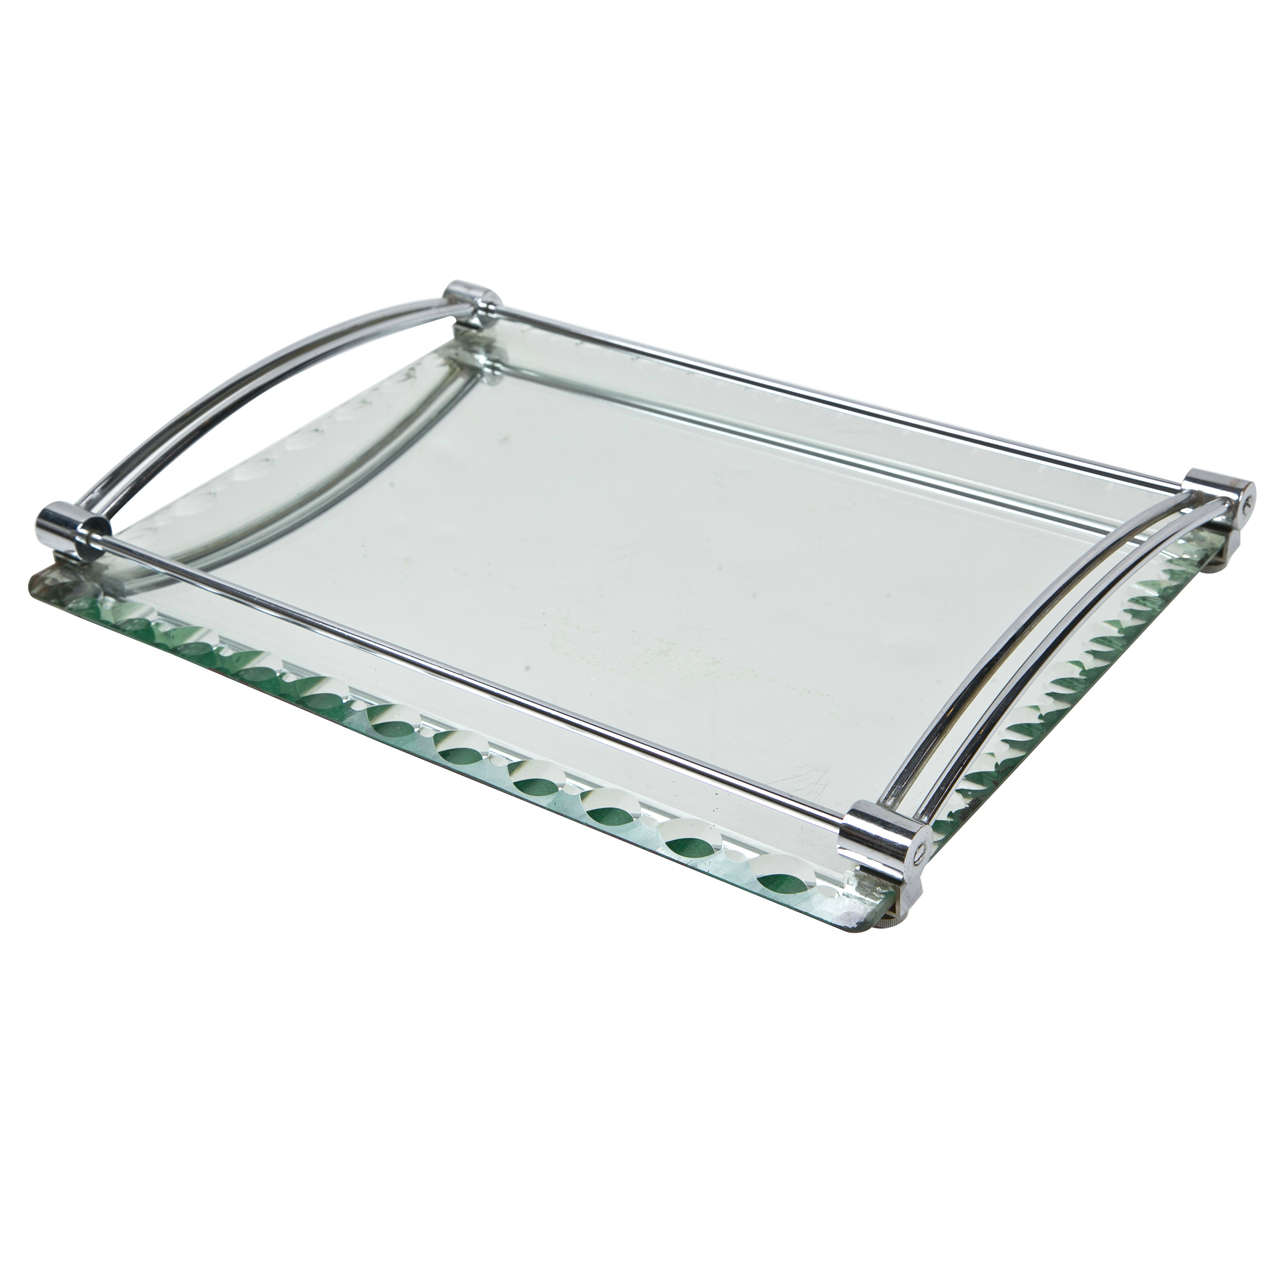 C1940 39 s french deckled edge mirrored vanity tray at 1stdibs for Mirrored bathroom tray